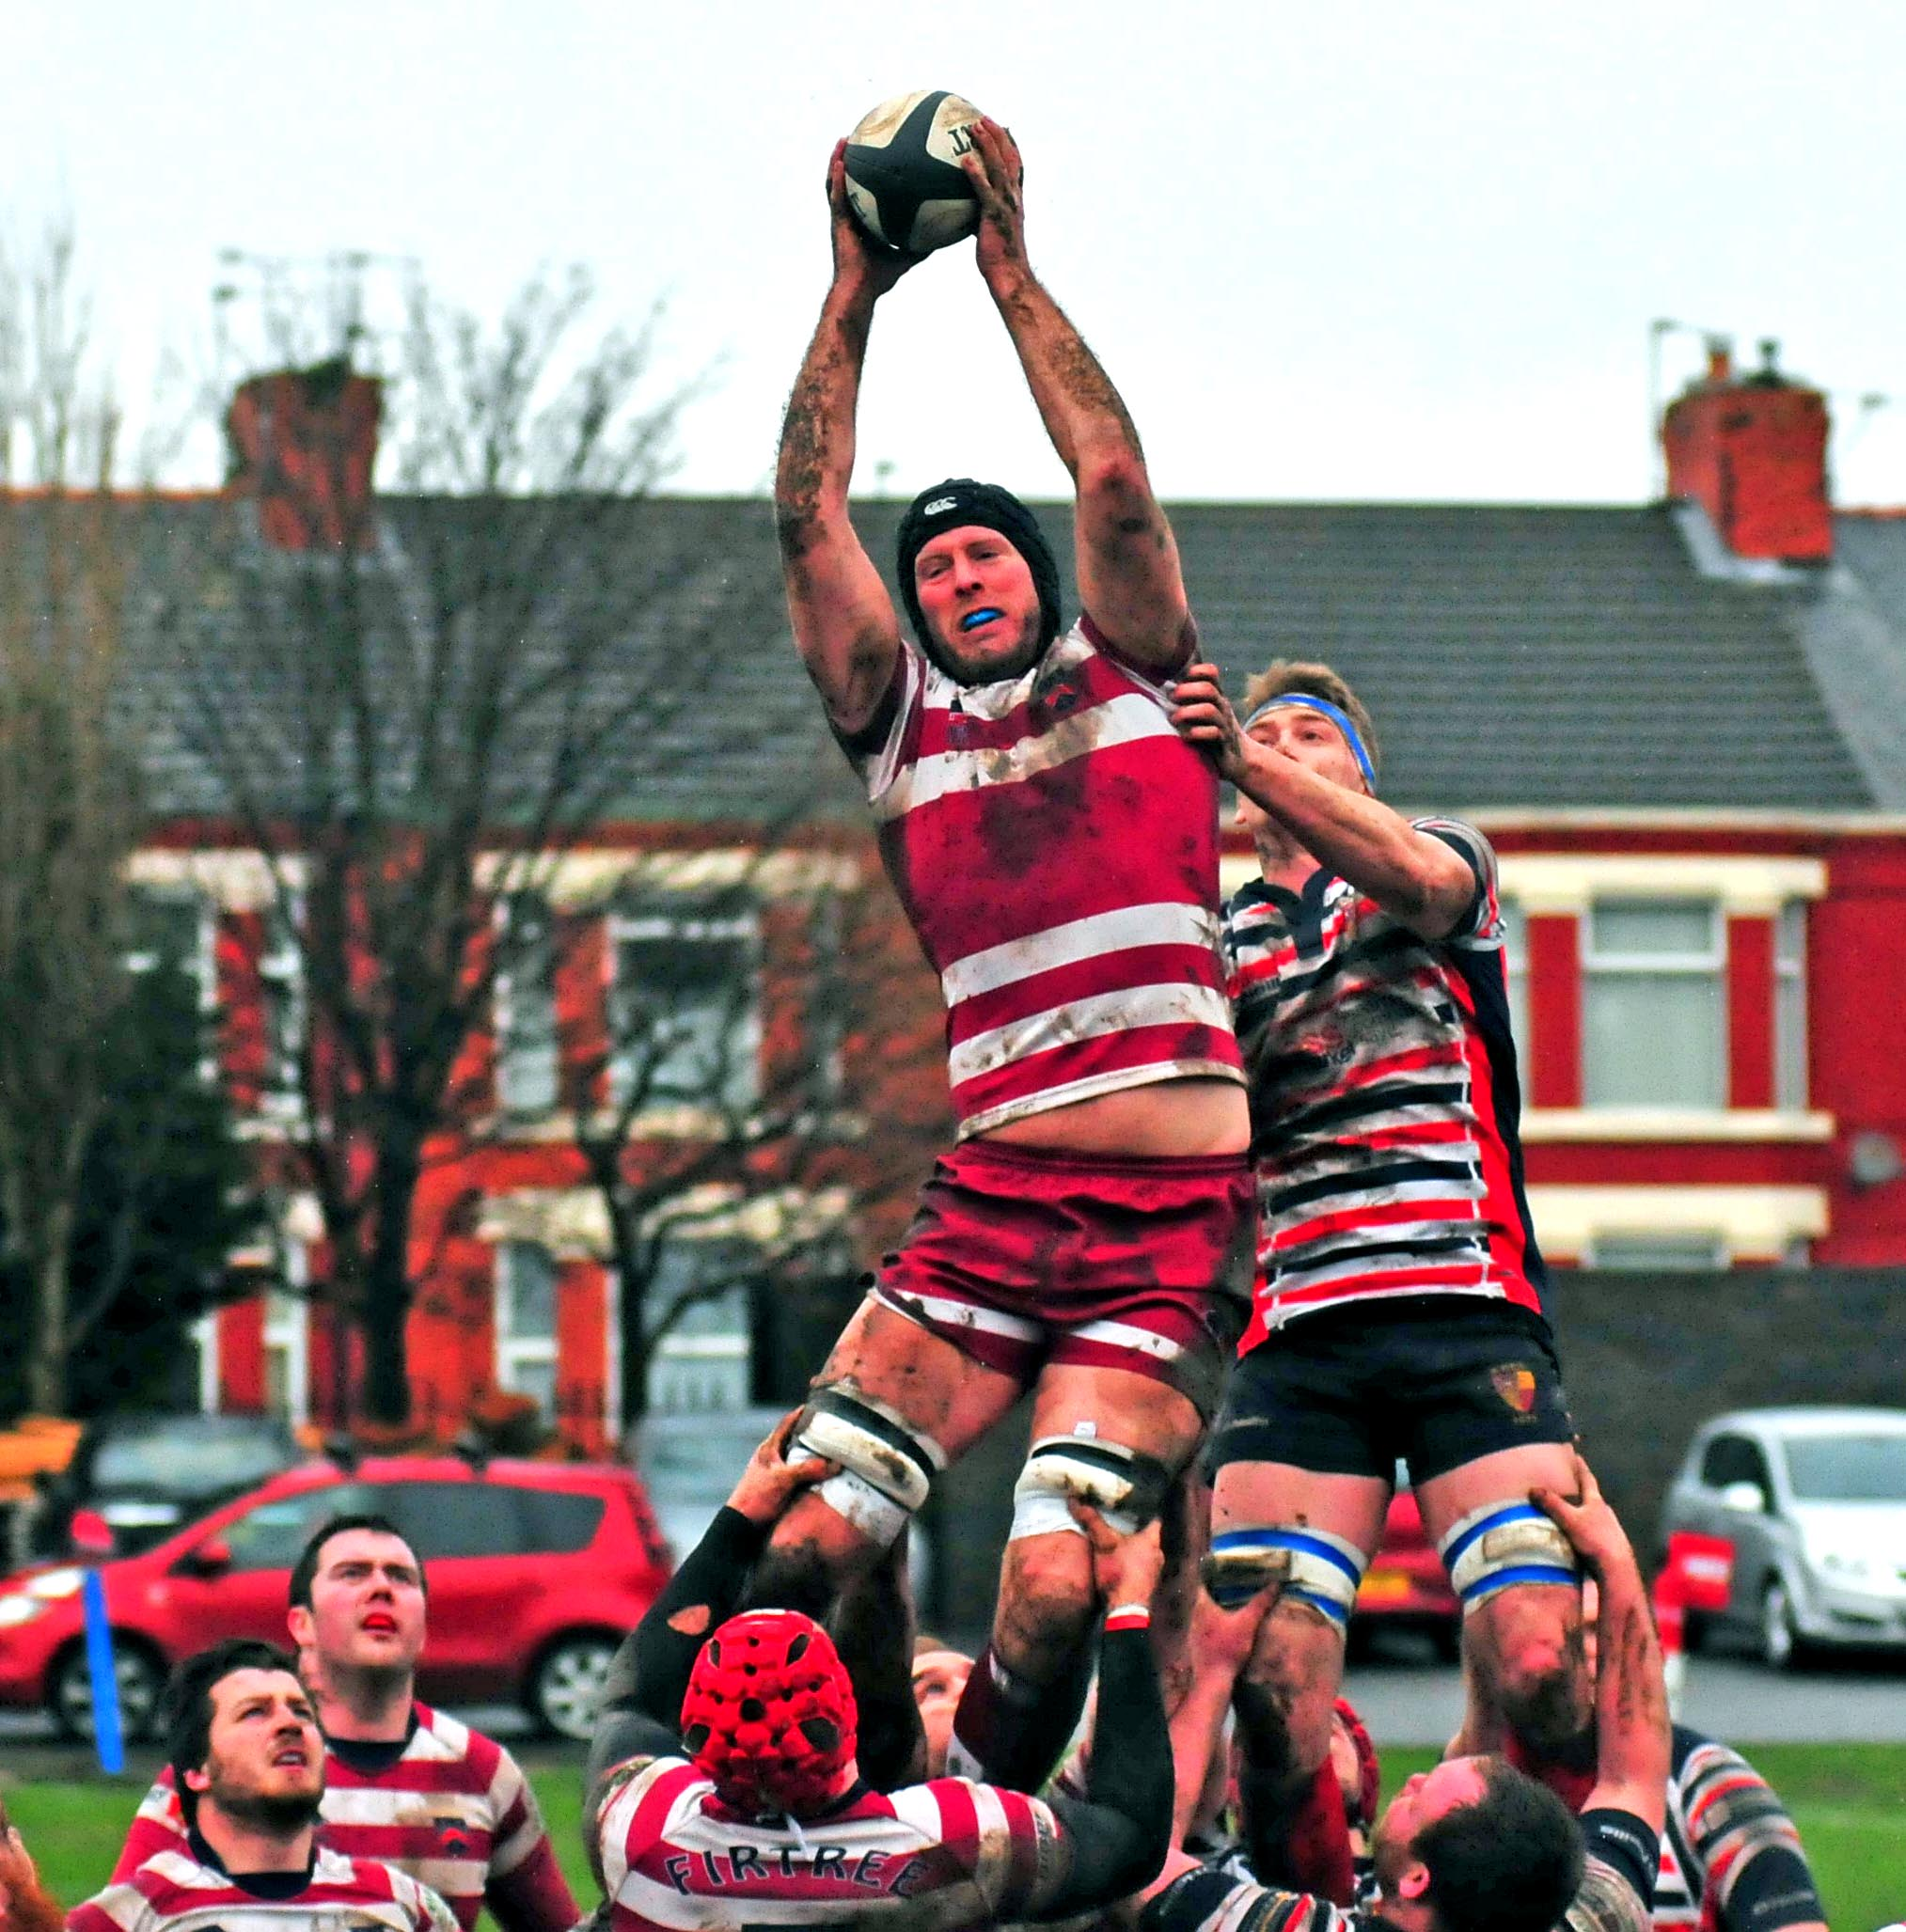 Wirral's Ryan Sterad securing good line-out ball against Birkenhead Park in a feisty game. Picture by Steve Billington